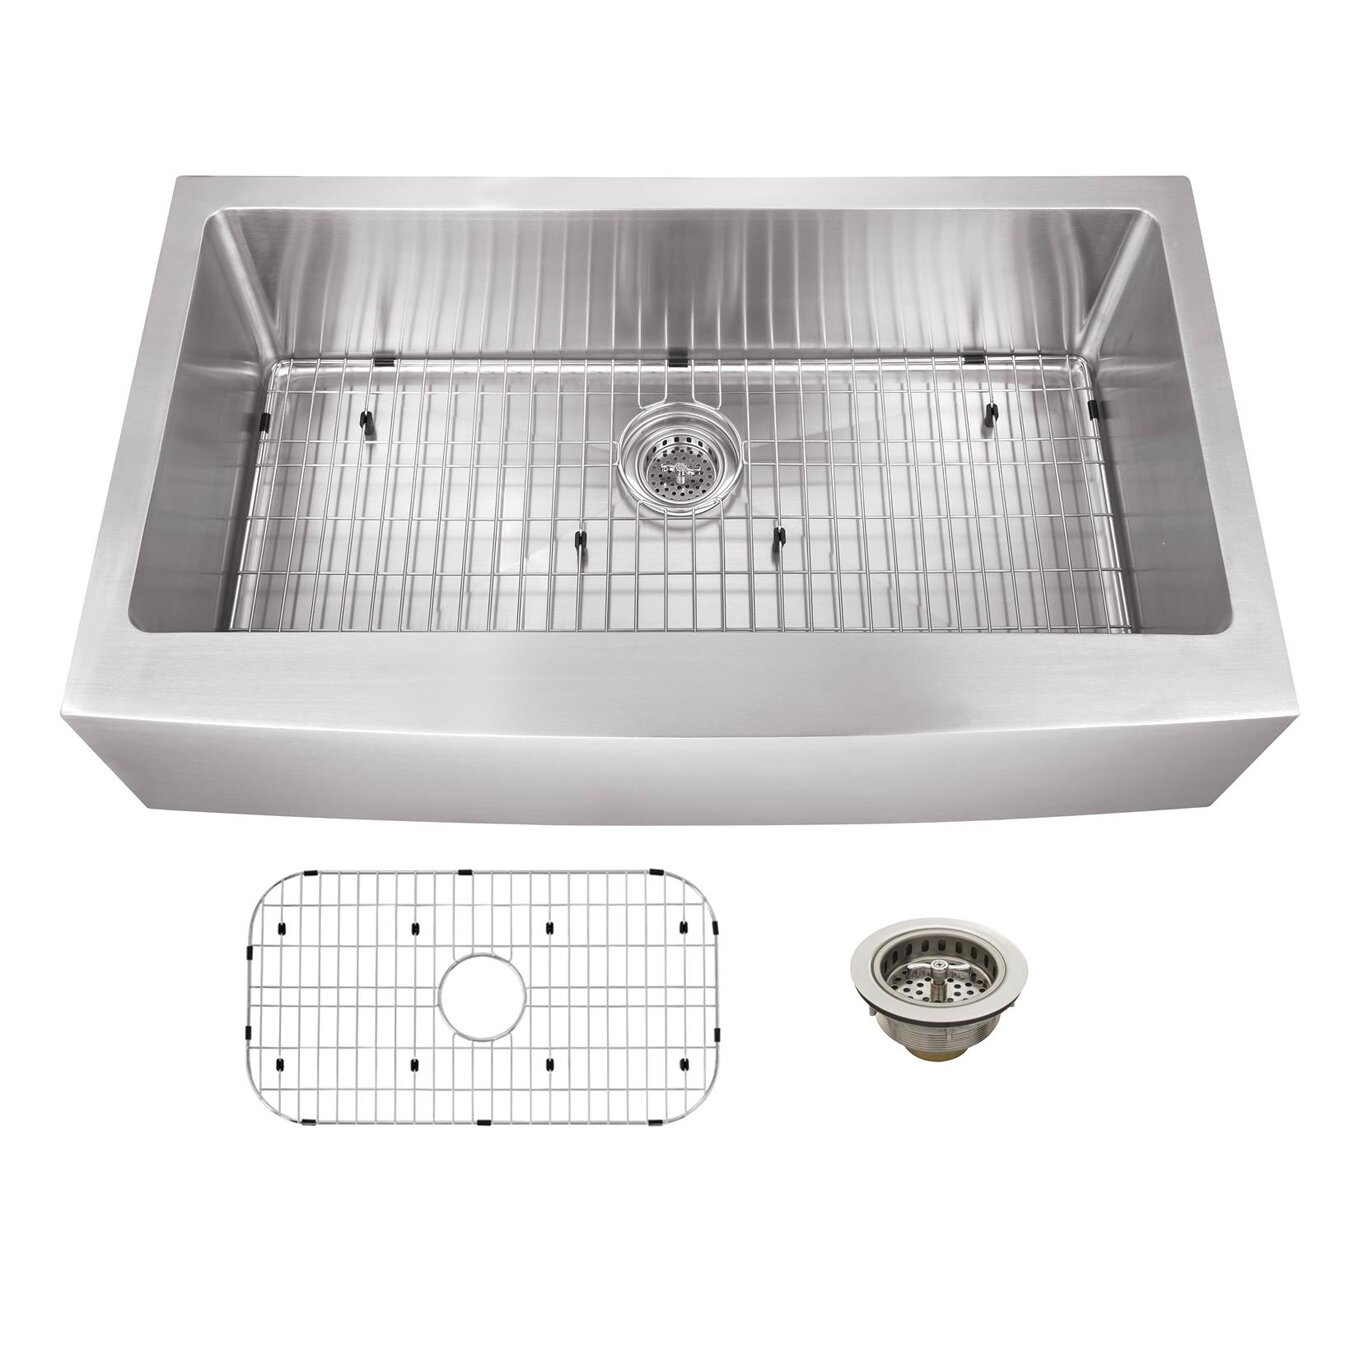 Apron Front Stainless Steel Kitchen Sink : ... 20